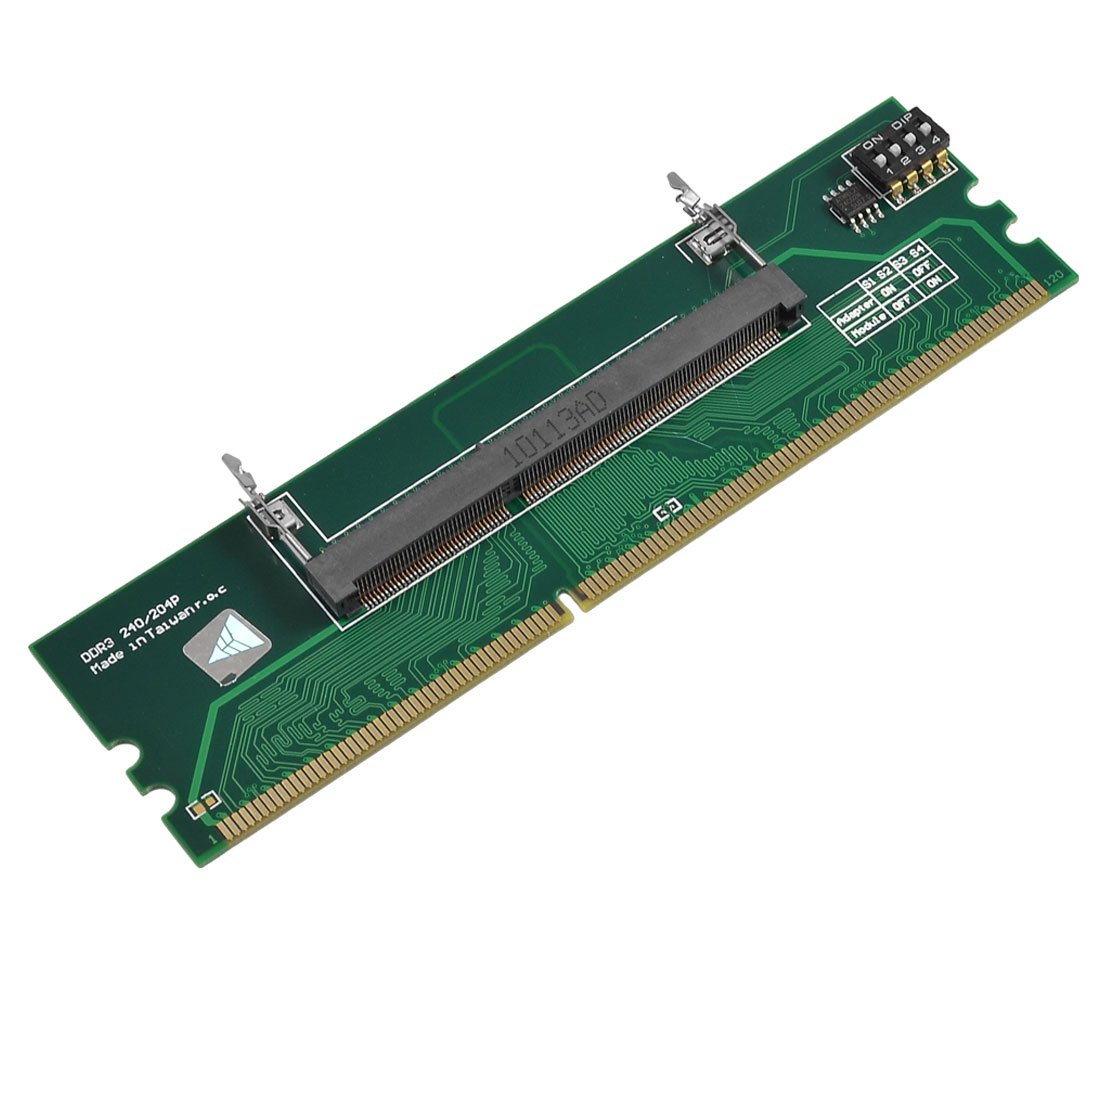 <font><b>DDR3</b></font> Laptop zu Desktop-Speicher <font><b>RAM</b></font> <font><b>Adapter</b></font> Stecker Konverter image